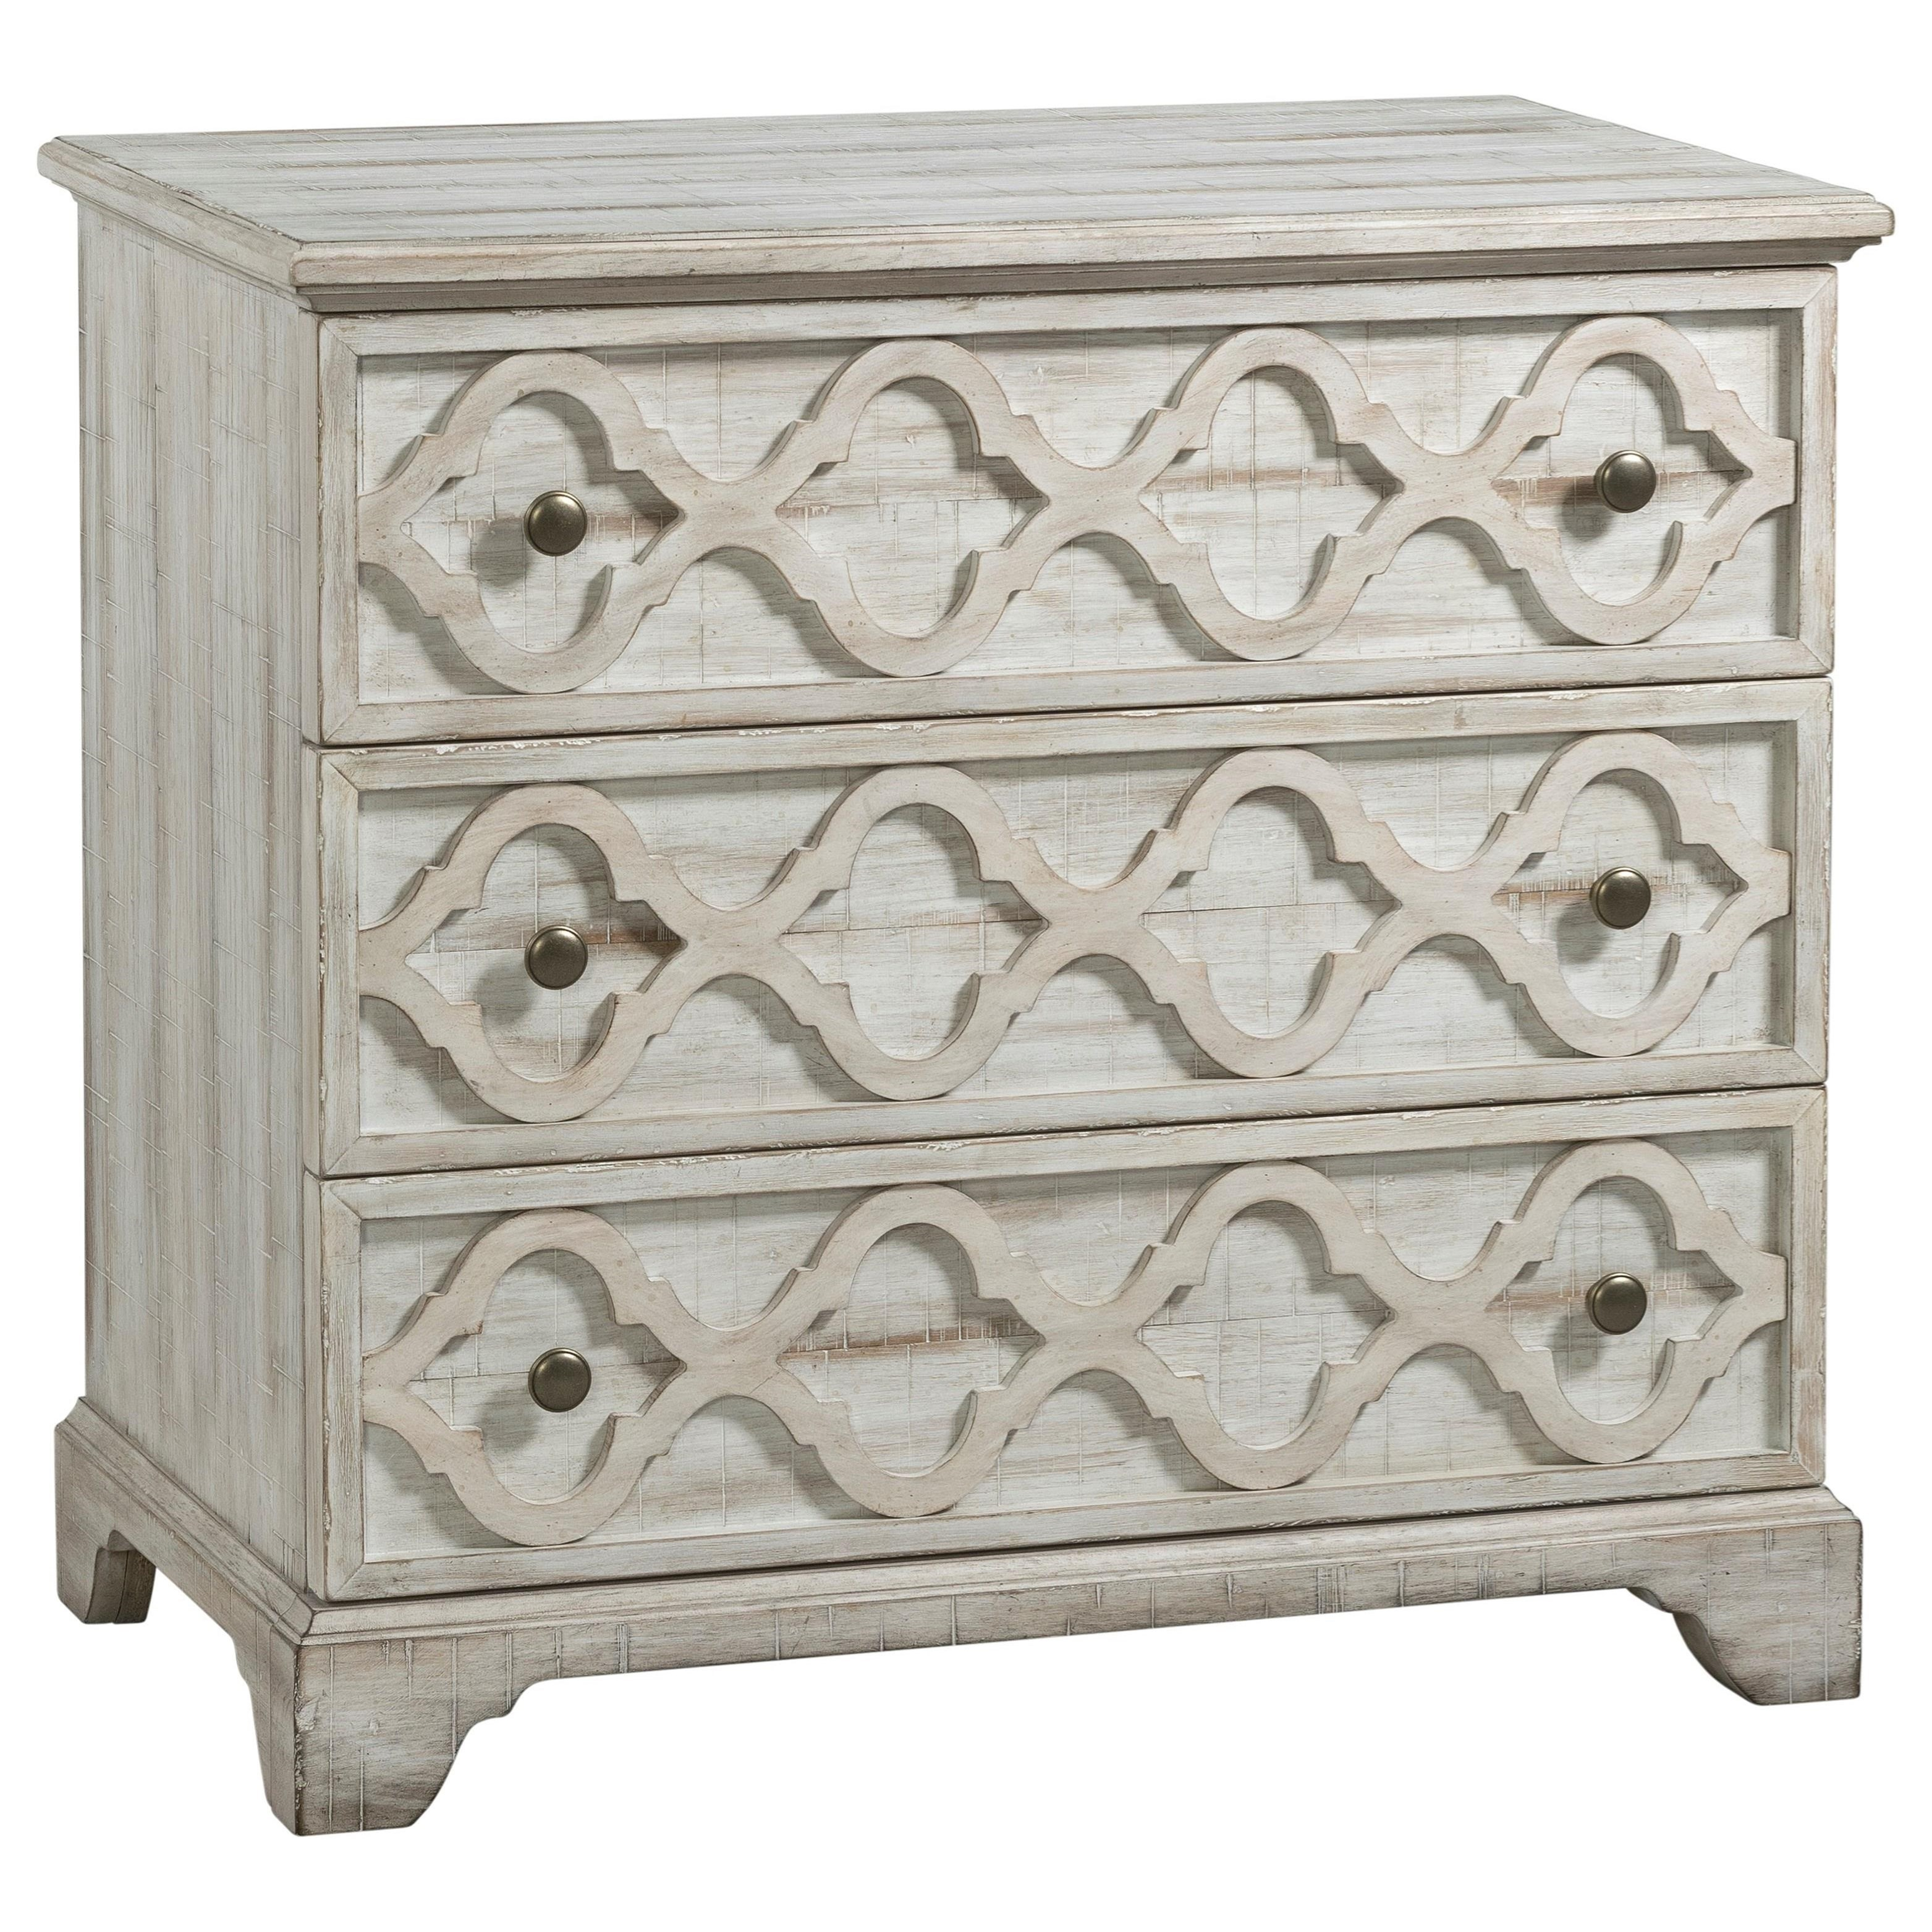 3-Drawer Bachelors Chest